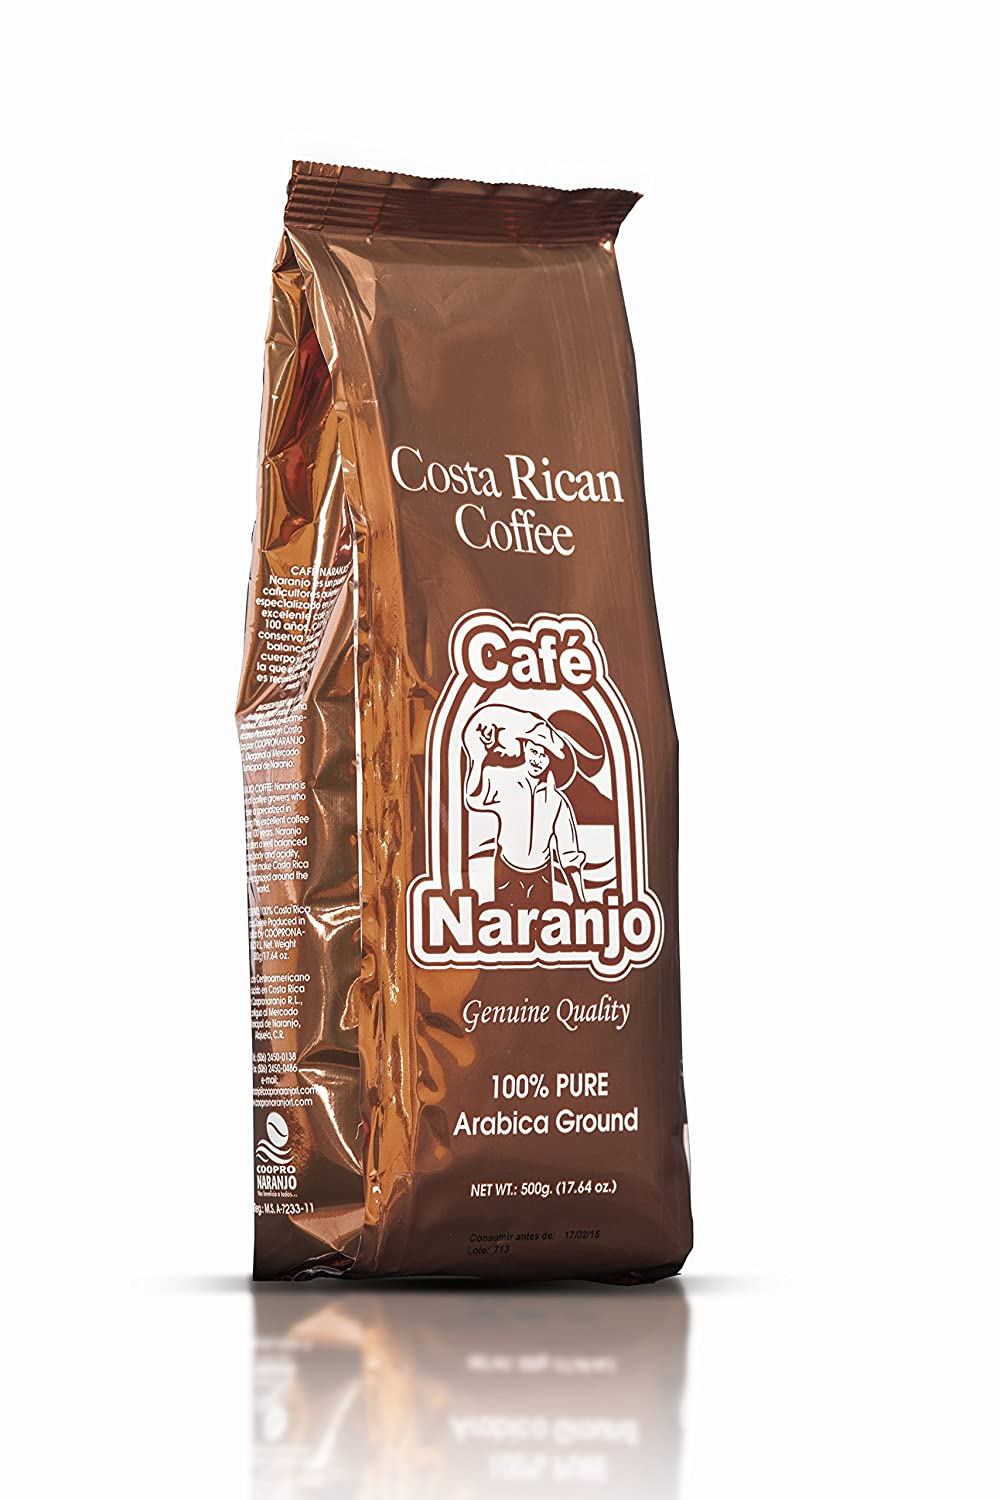 Amazon.com : Costa Rican Coffee Café Naranjo - Ground 1000g : Grocery & Gourmet Food